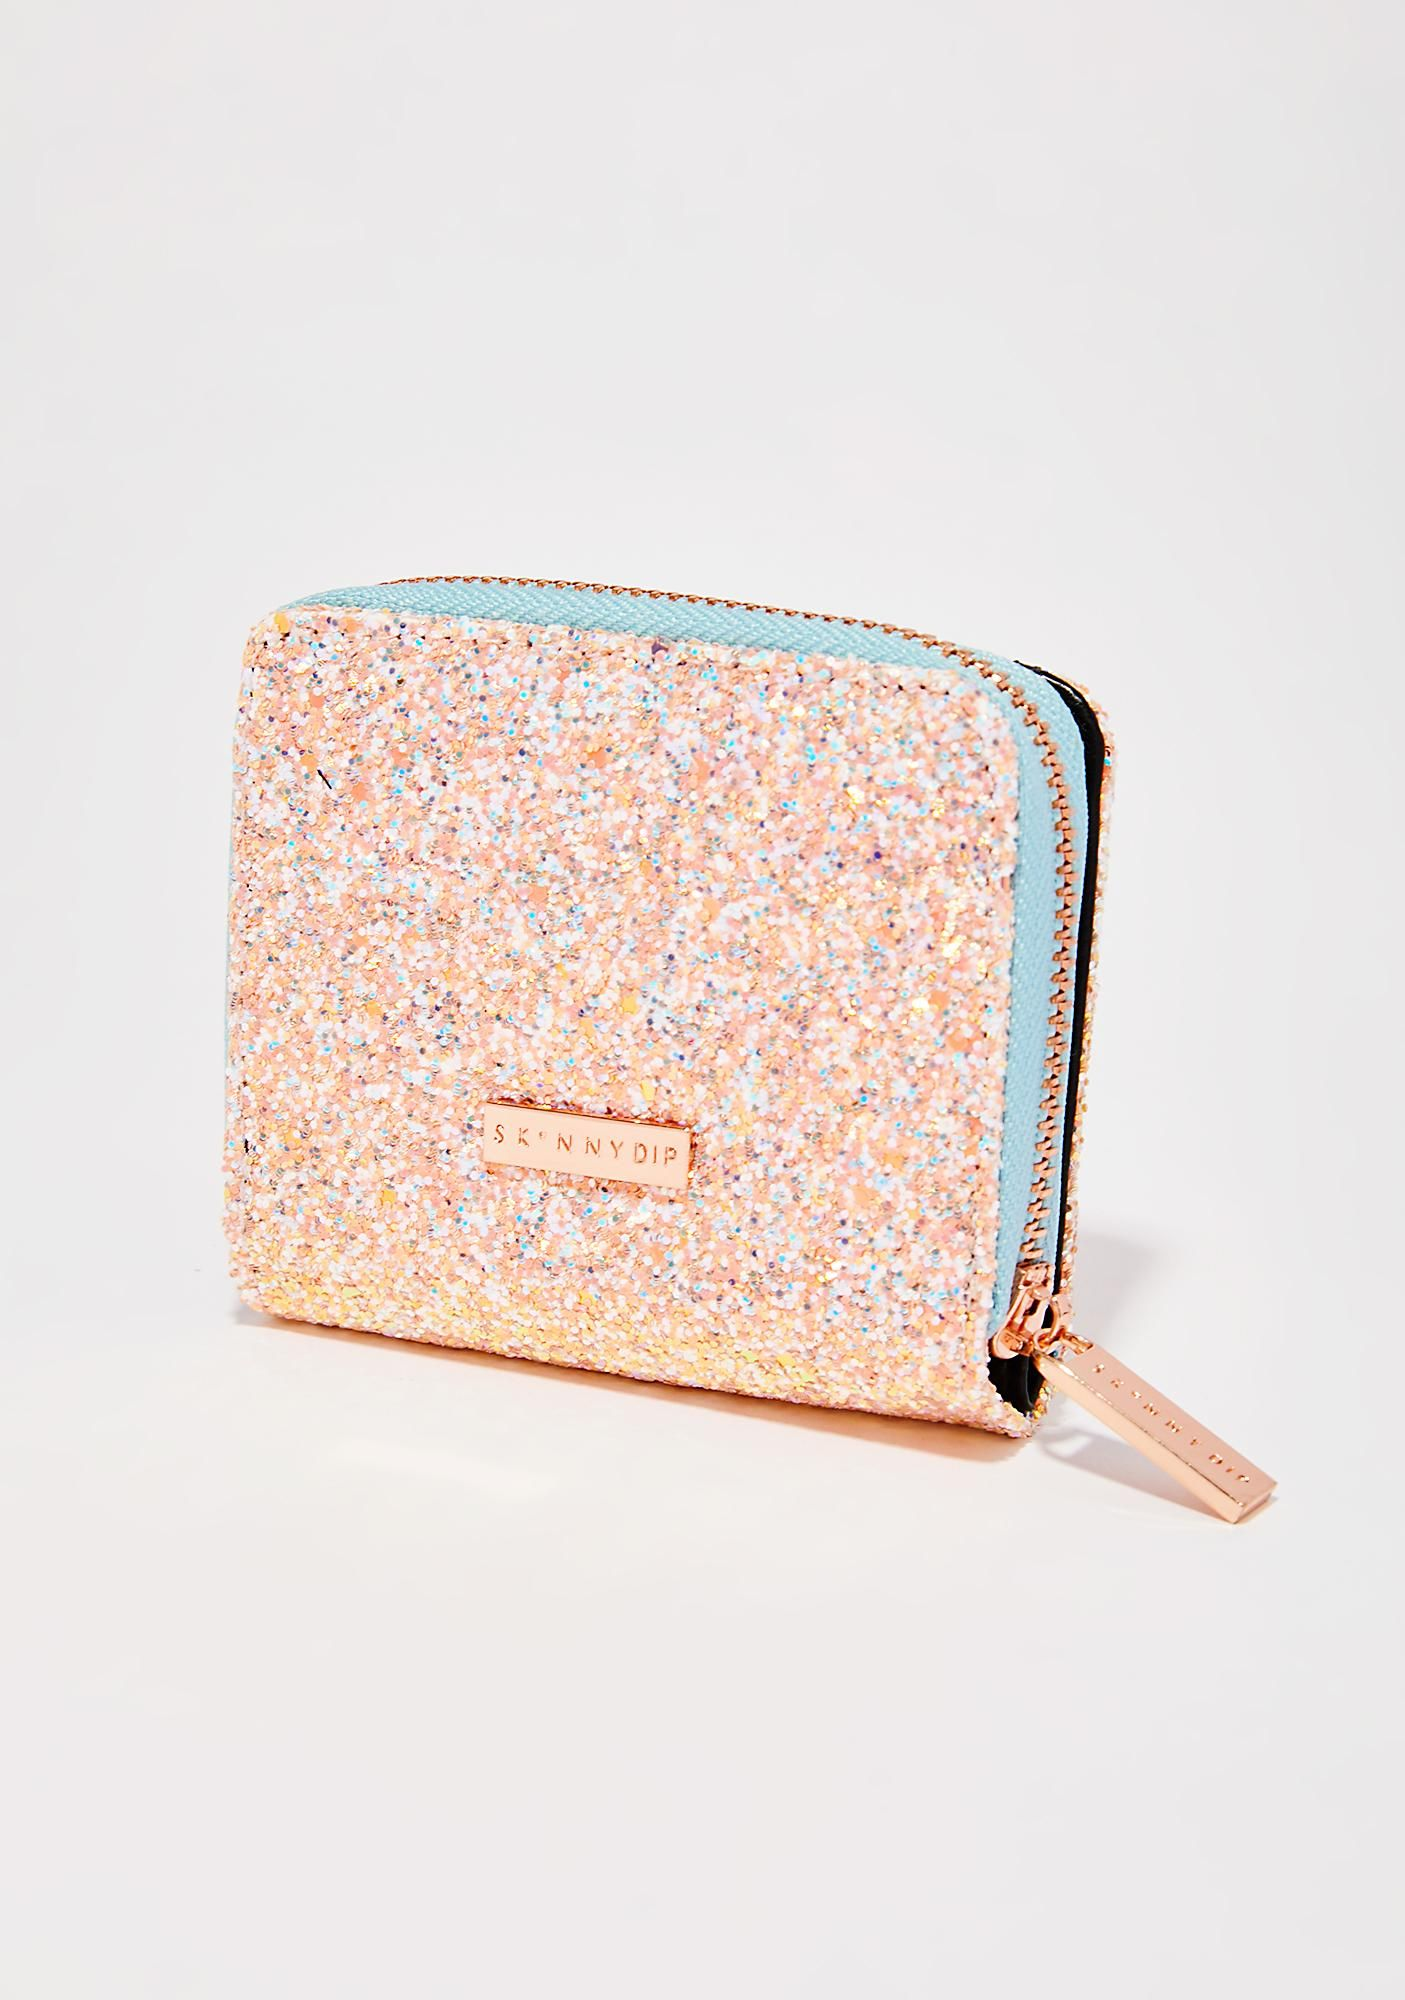 3870e03c1b Skinnydip Ditsy Wallet cuz you're down for the glitz N' glamour ...